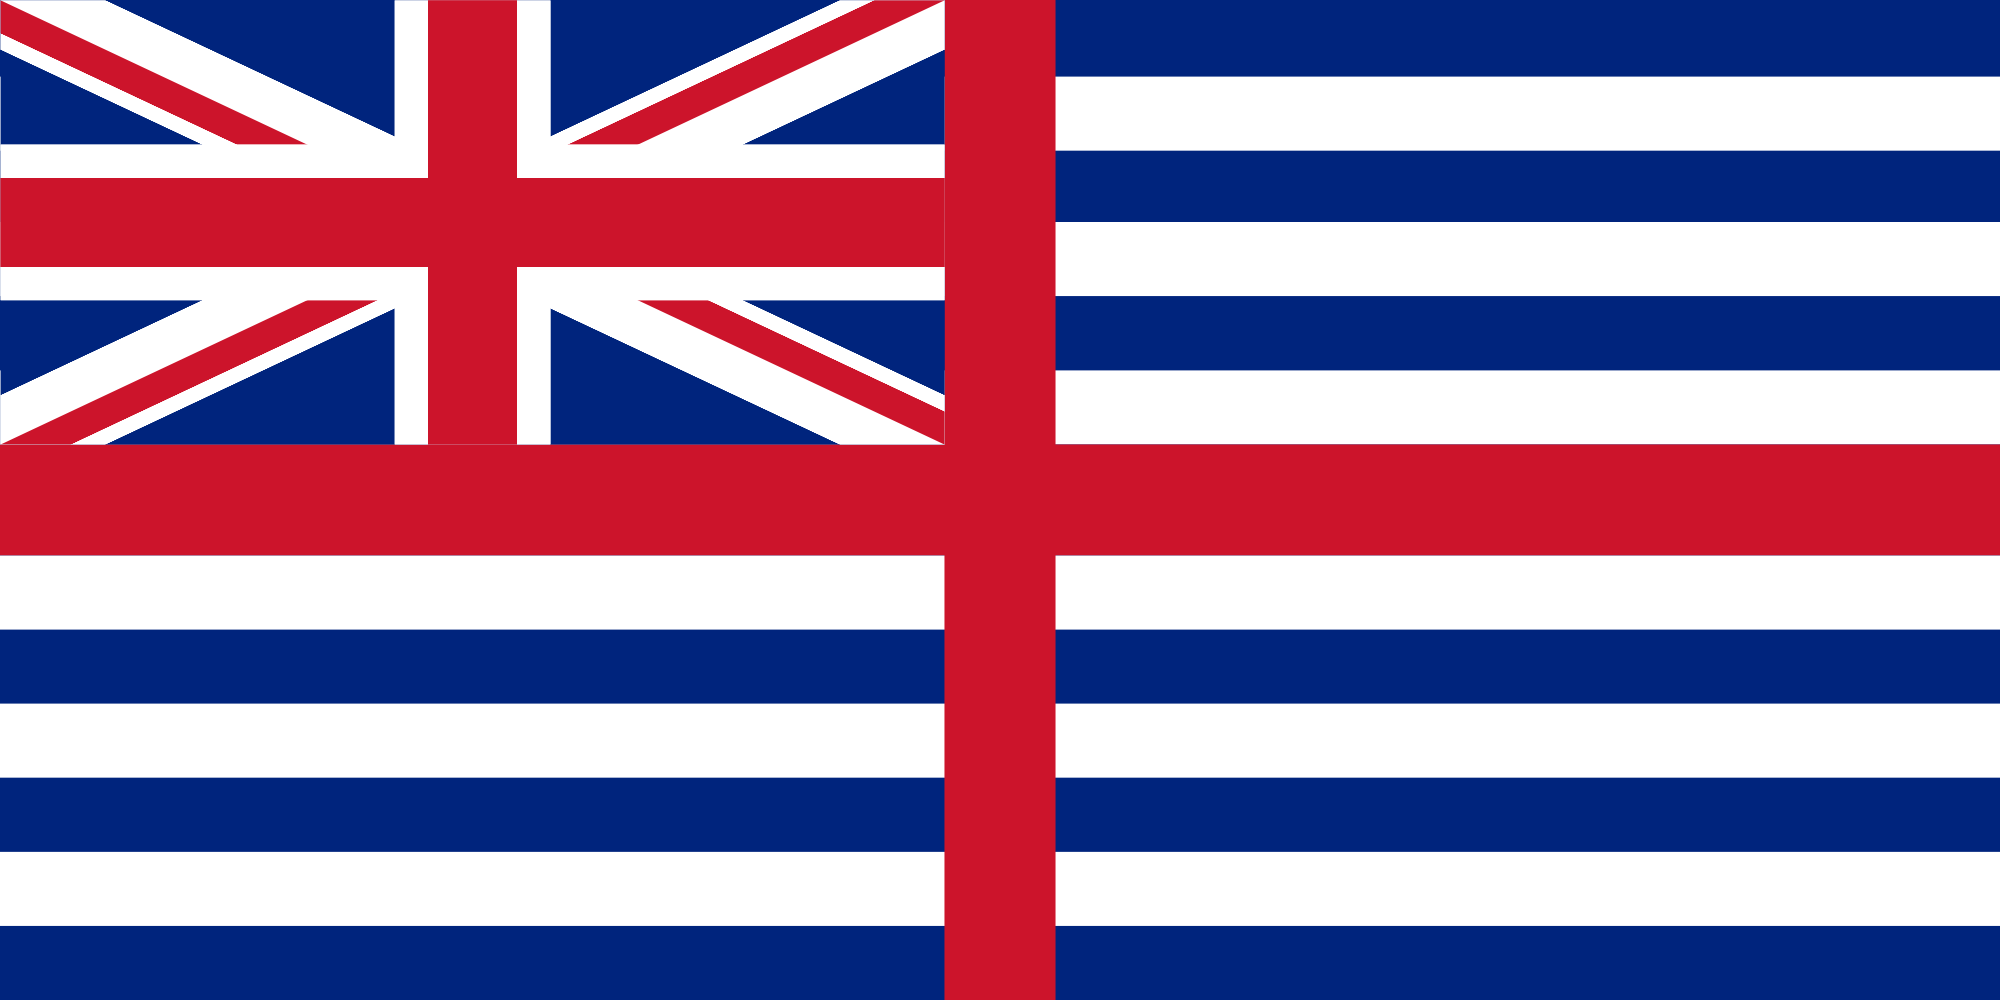 Van Diemen's Land Ensign Wikipedia